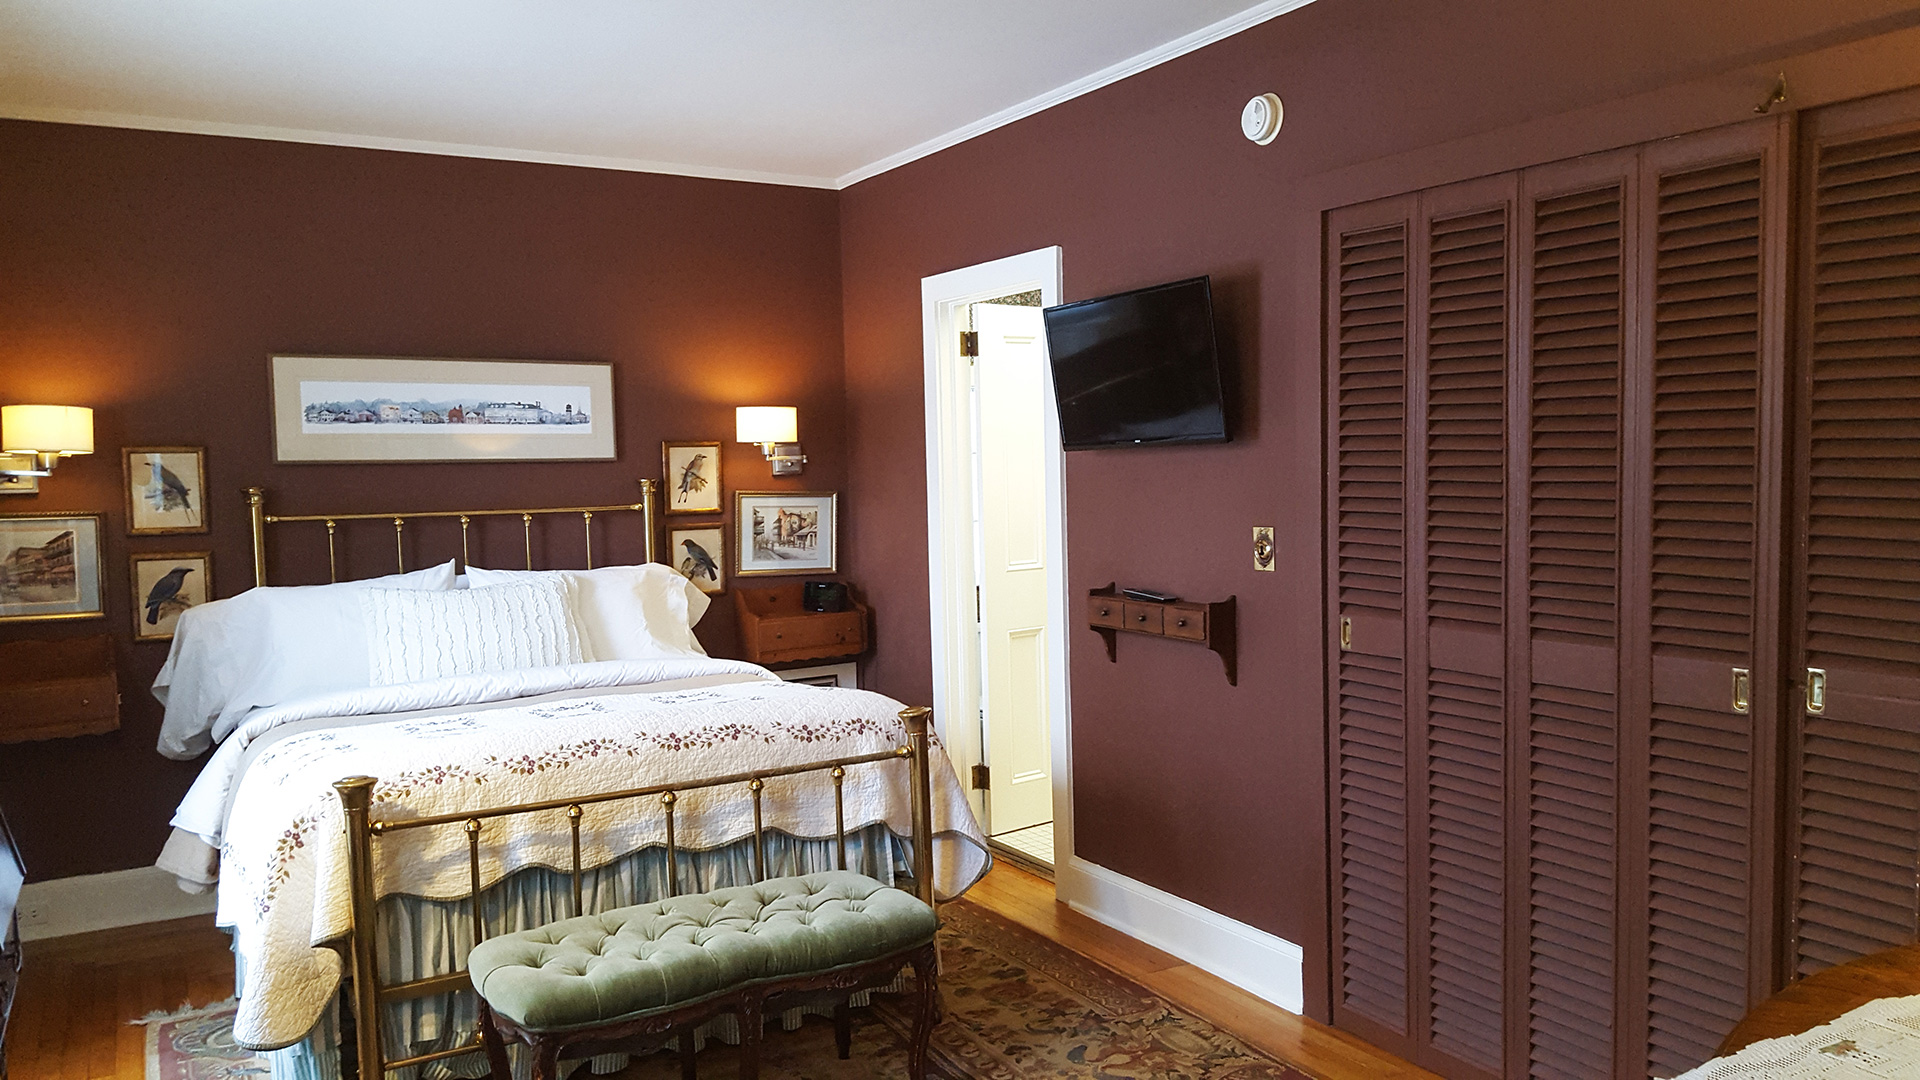 The Brown Room